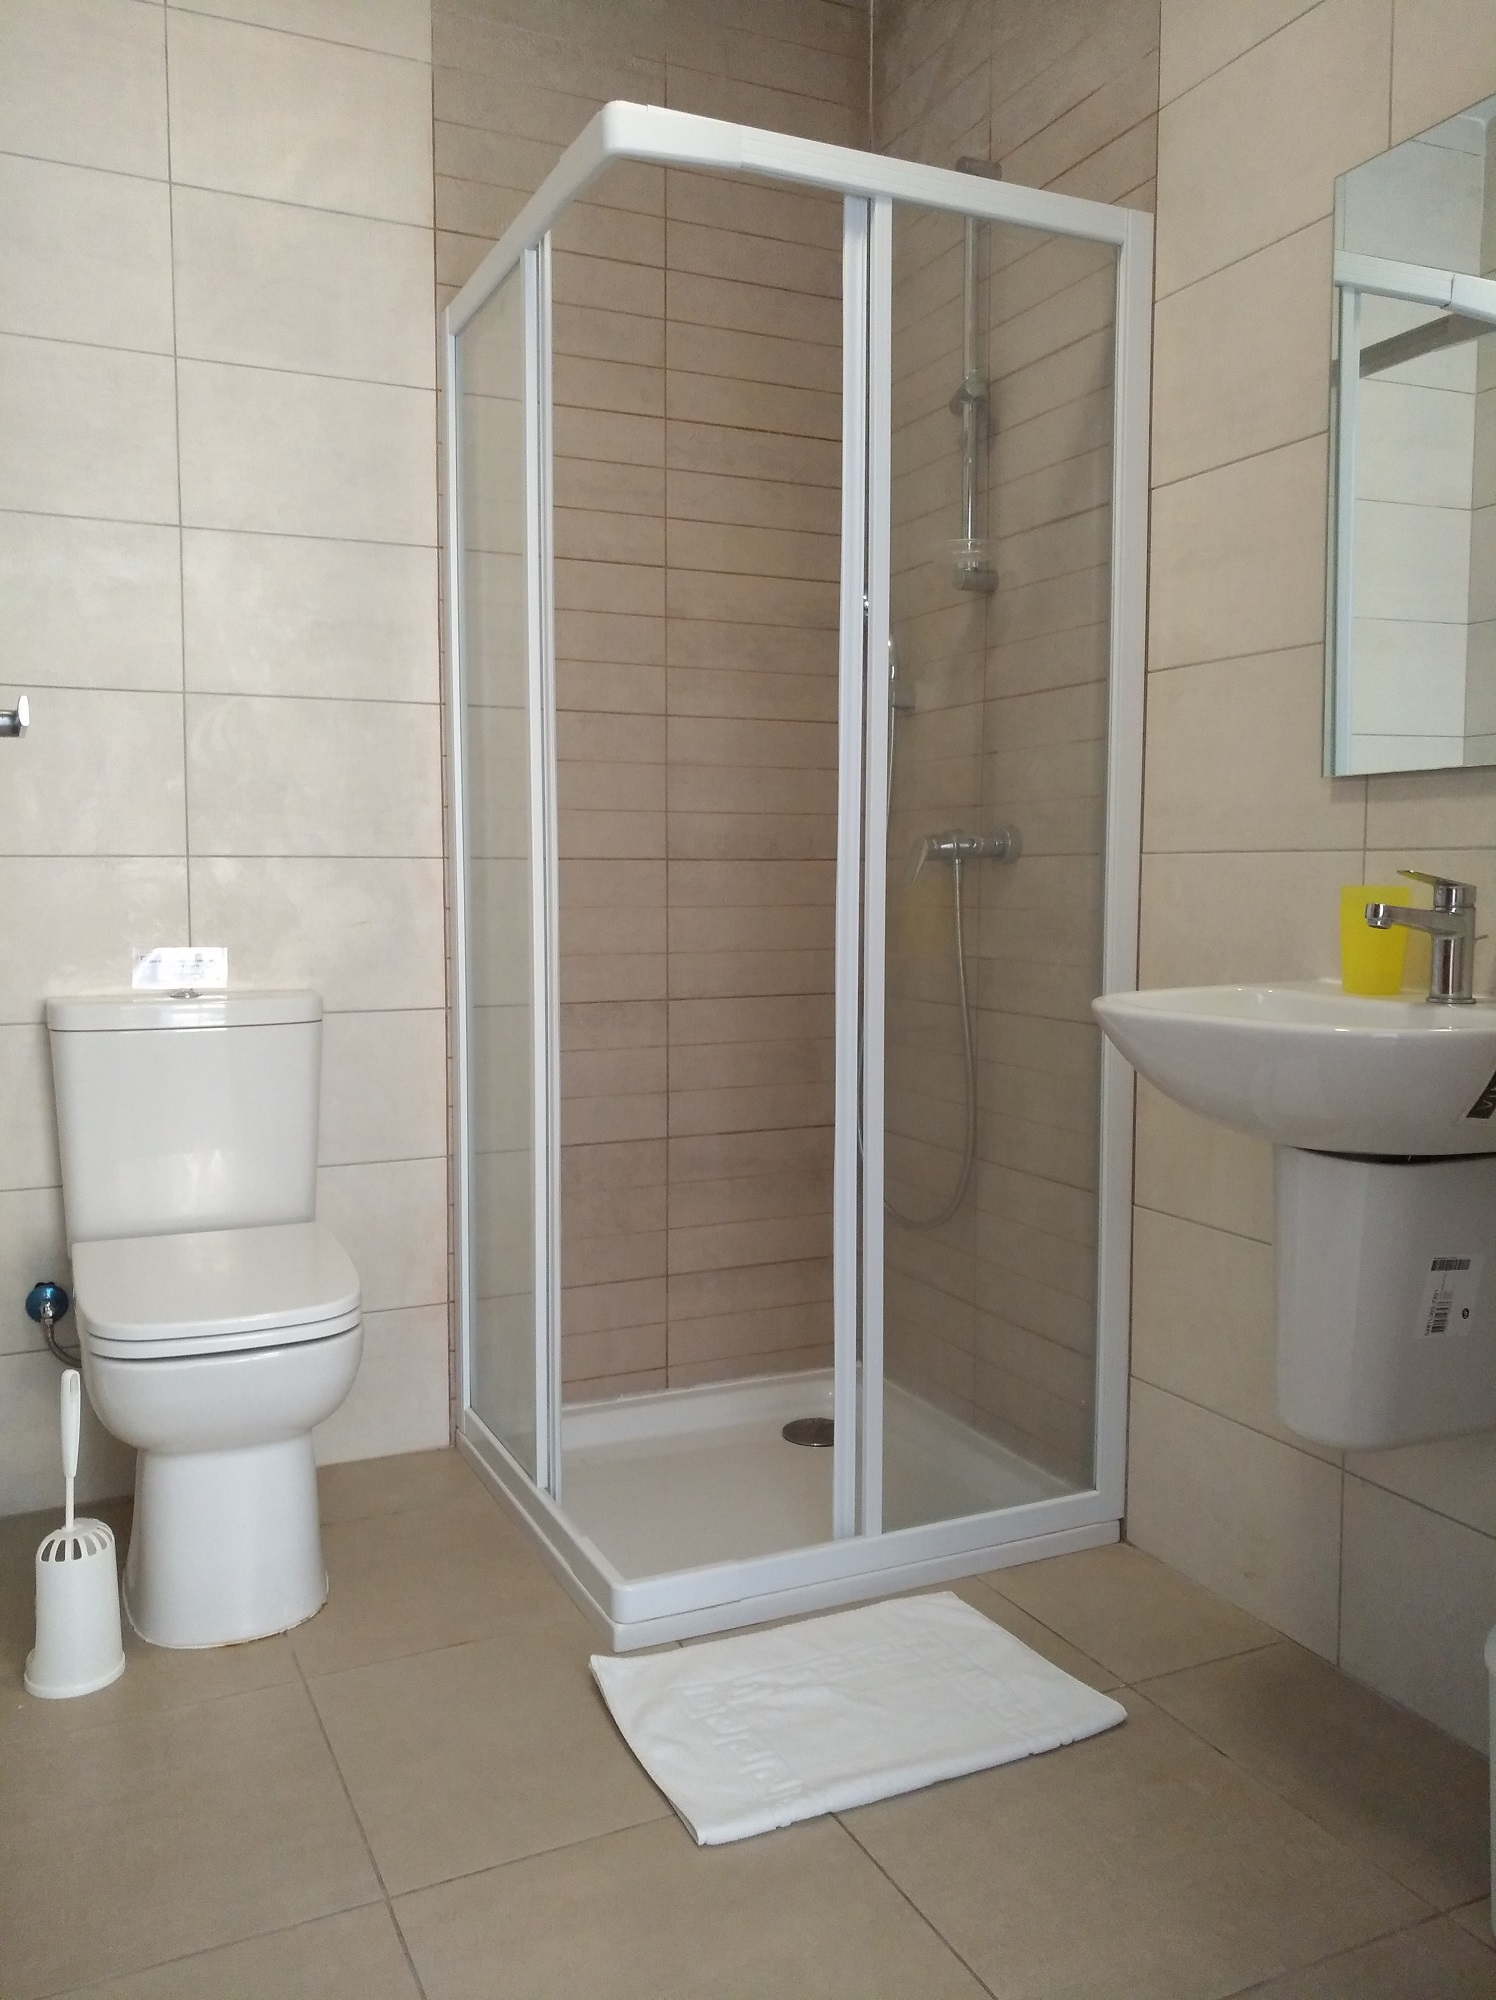 Shared bathroom at the BELS Student residence in malta